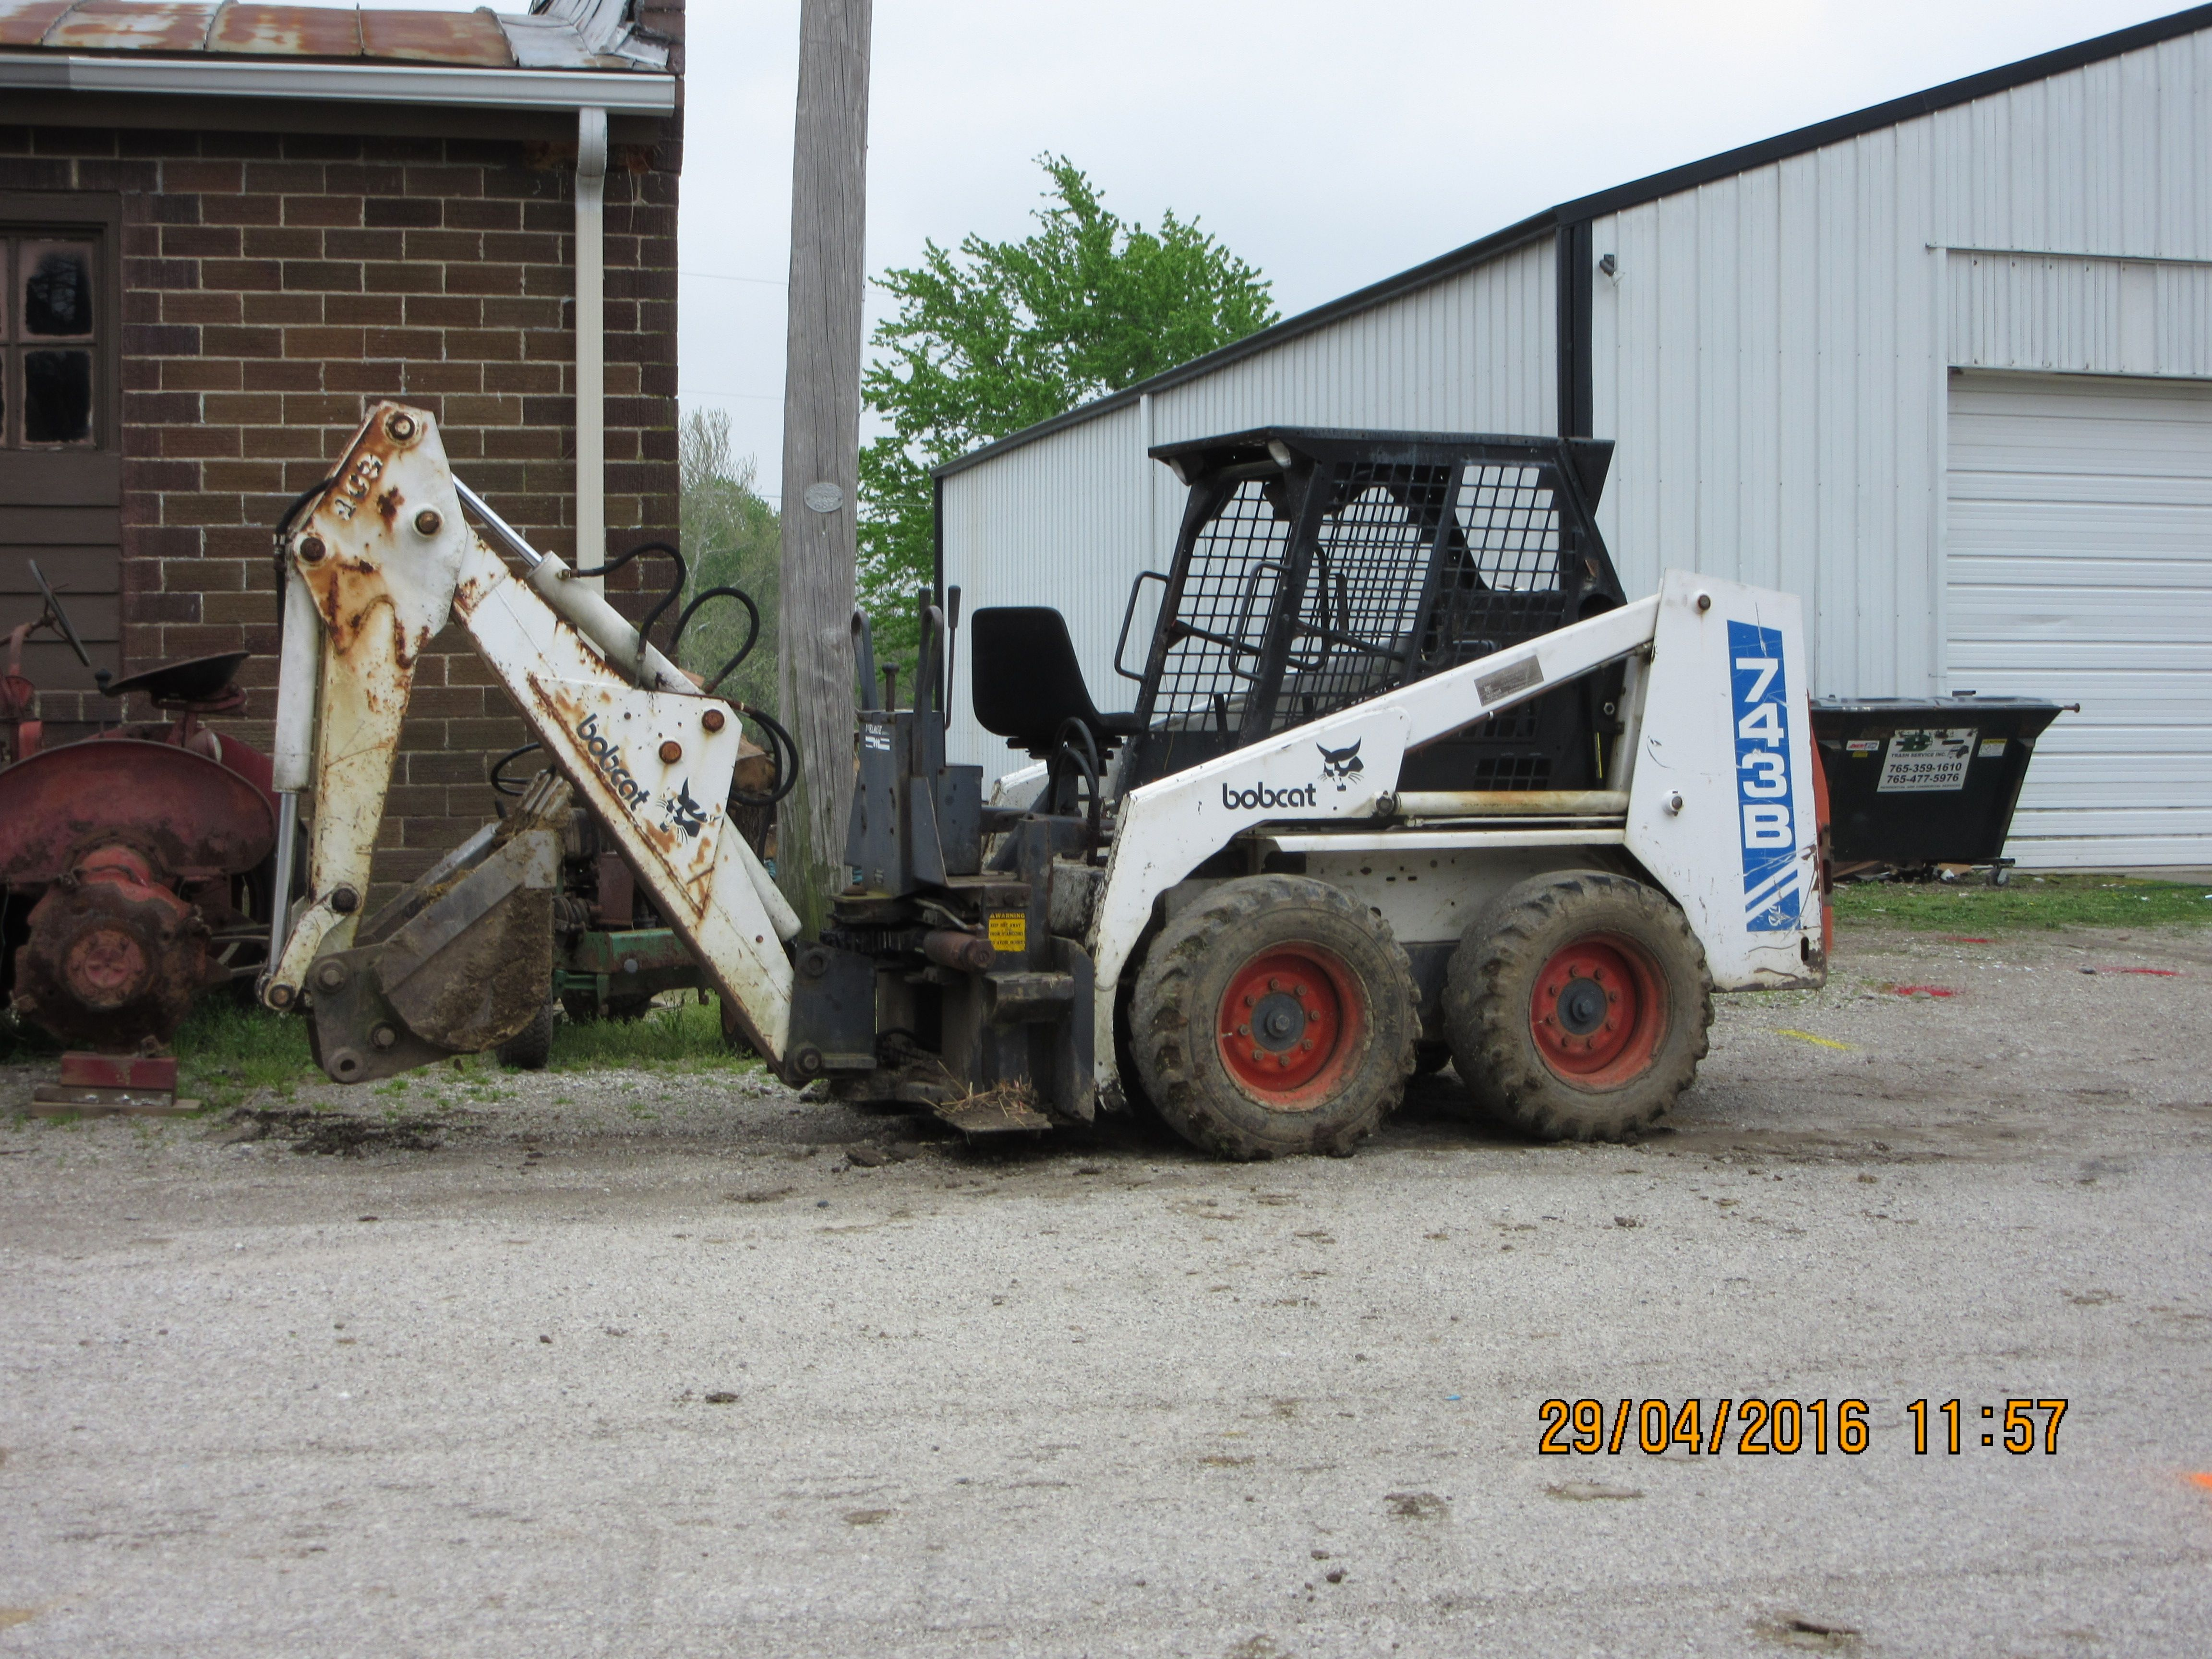 Bobcat 743b Skid Steer Loader With Bachoe Construction Equipment